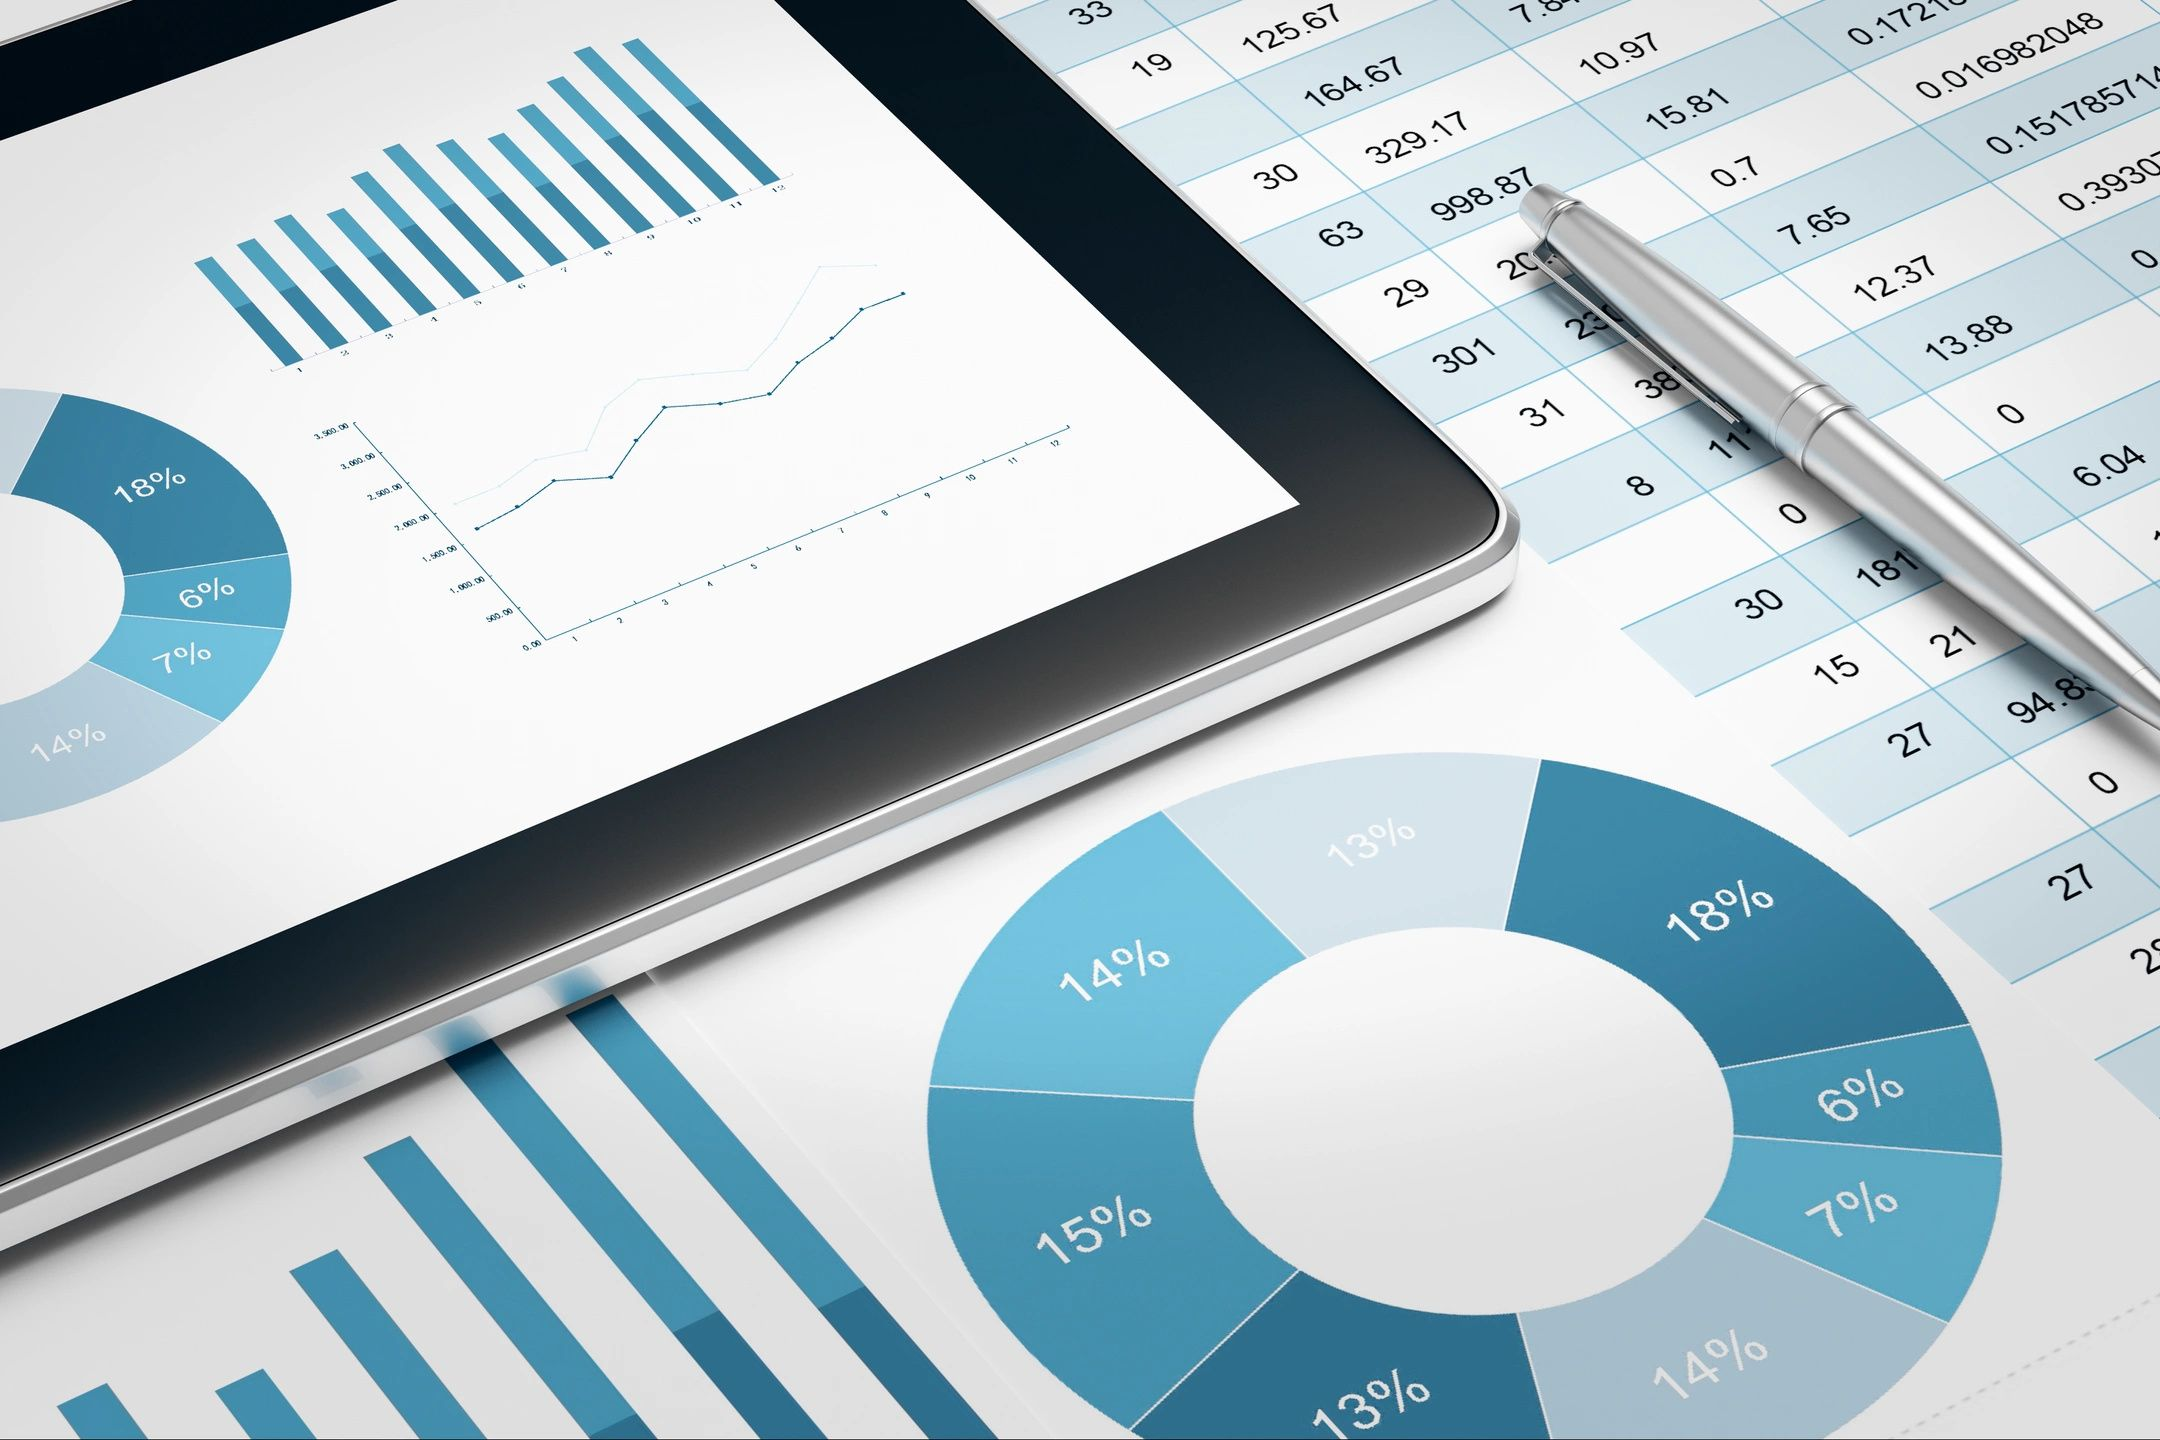 How to read a mutual fund fact sheet - 5 key points